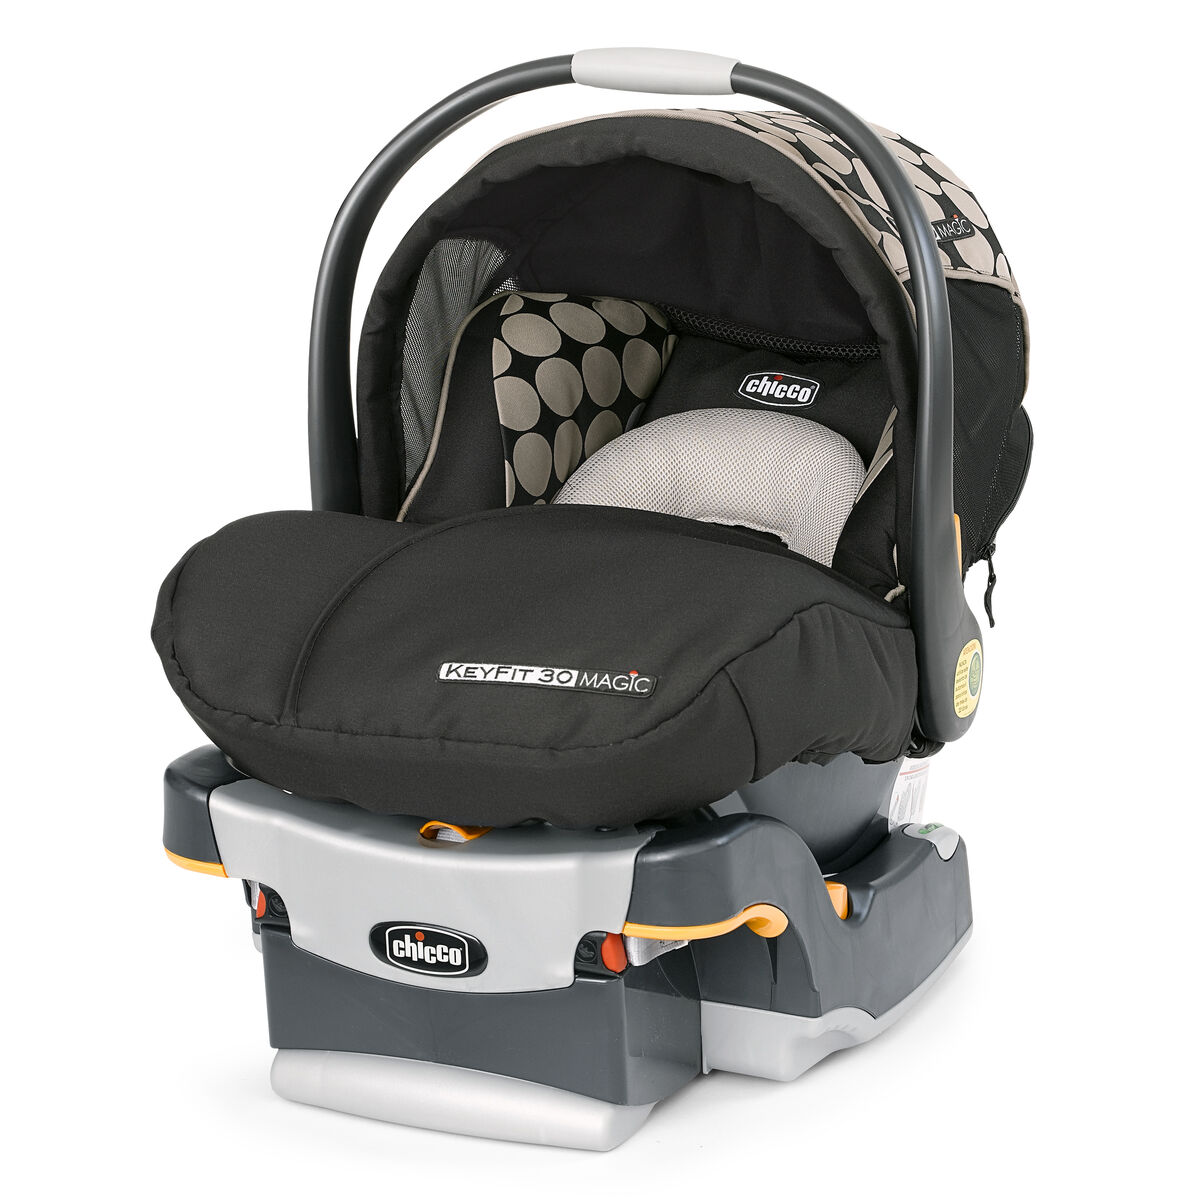 Chicco Keyfit 30 Magic Infant Car Seat Solare